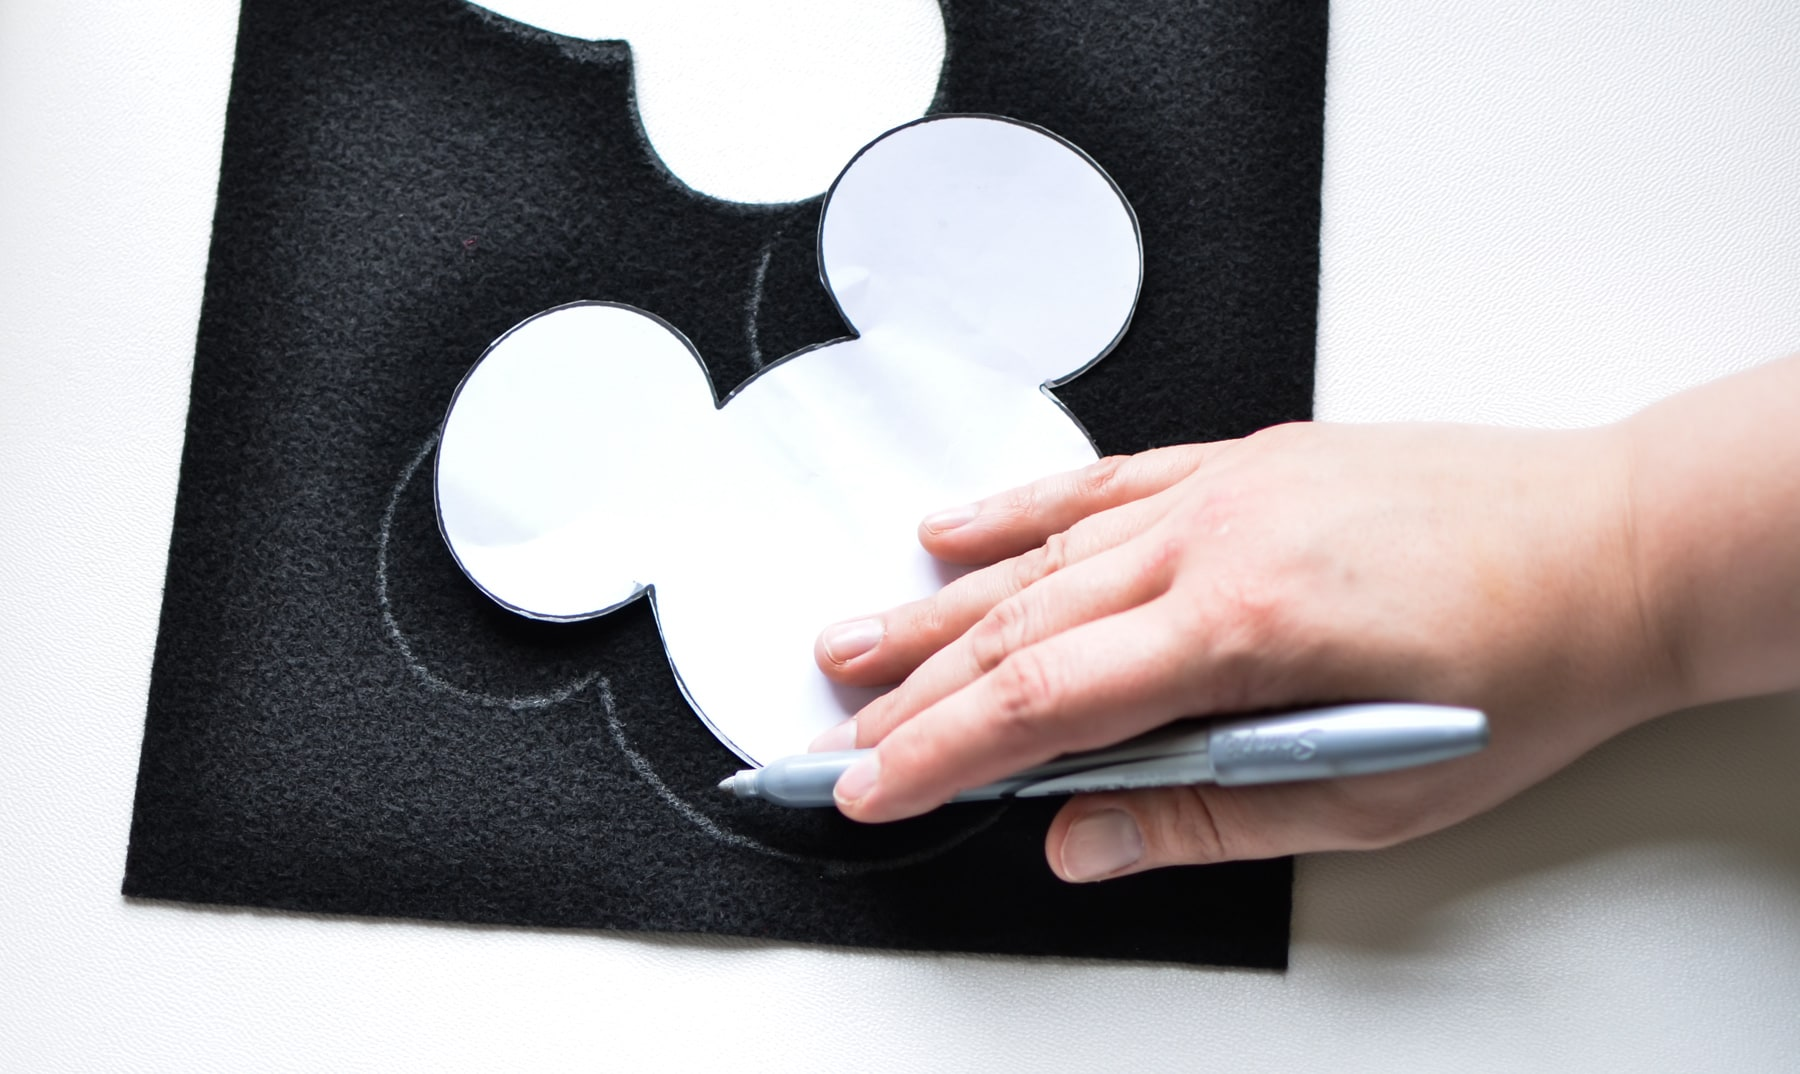 St. Patrick's Day Felt Craft - Featuring Mickey and Minnie Mouse for a fun activity for kids